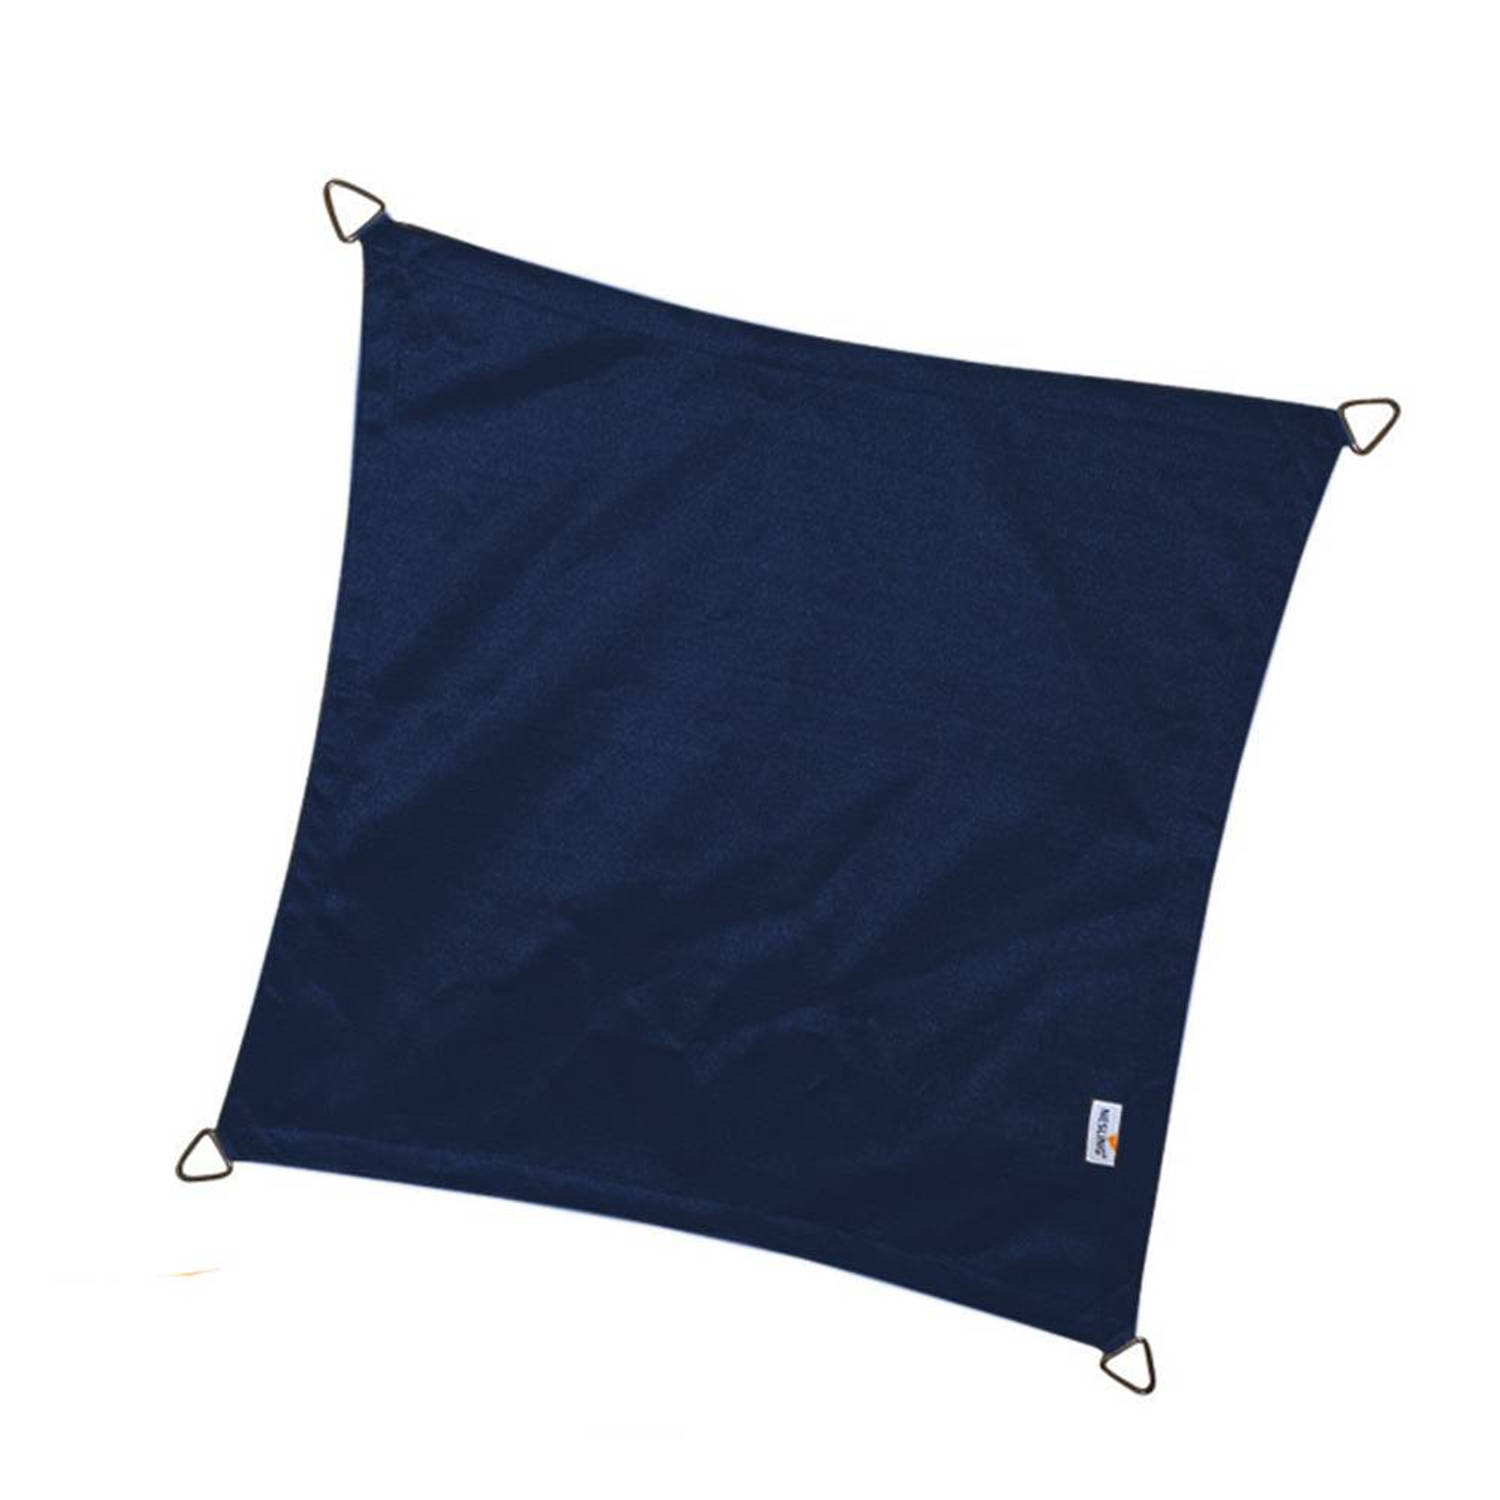 Nesling Coolfit 3,6x3,6 Navy Blauw